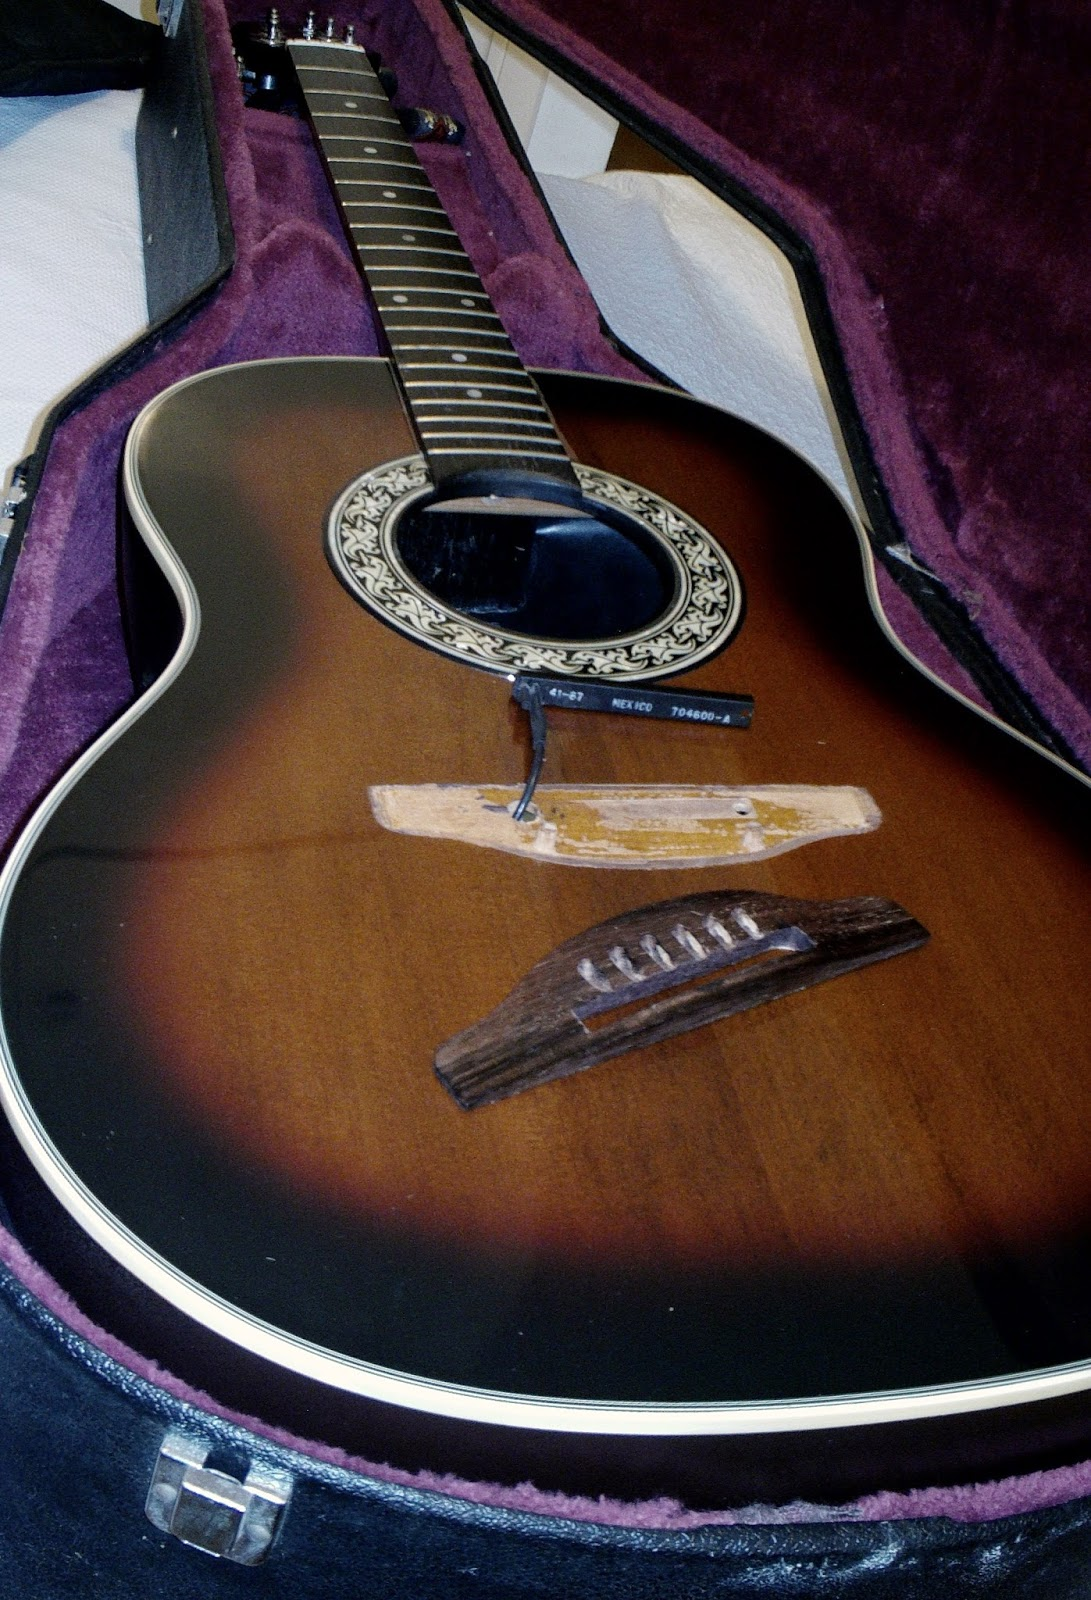 Ovation Pinnacle 3712 electro-acoustic guitar repair | Guitar Dreamer